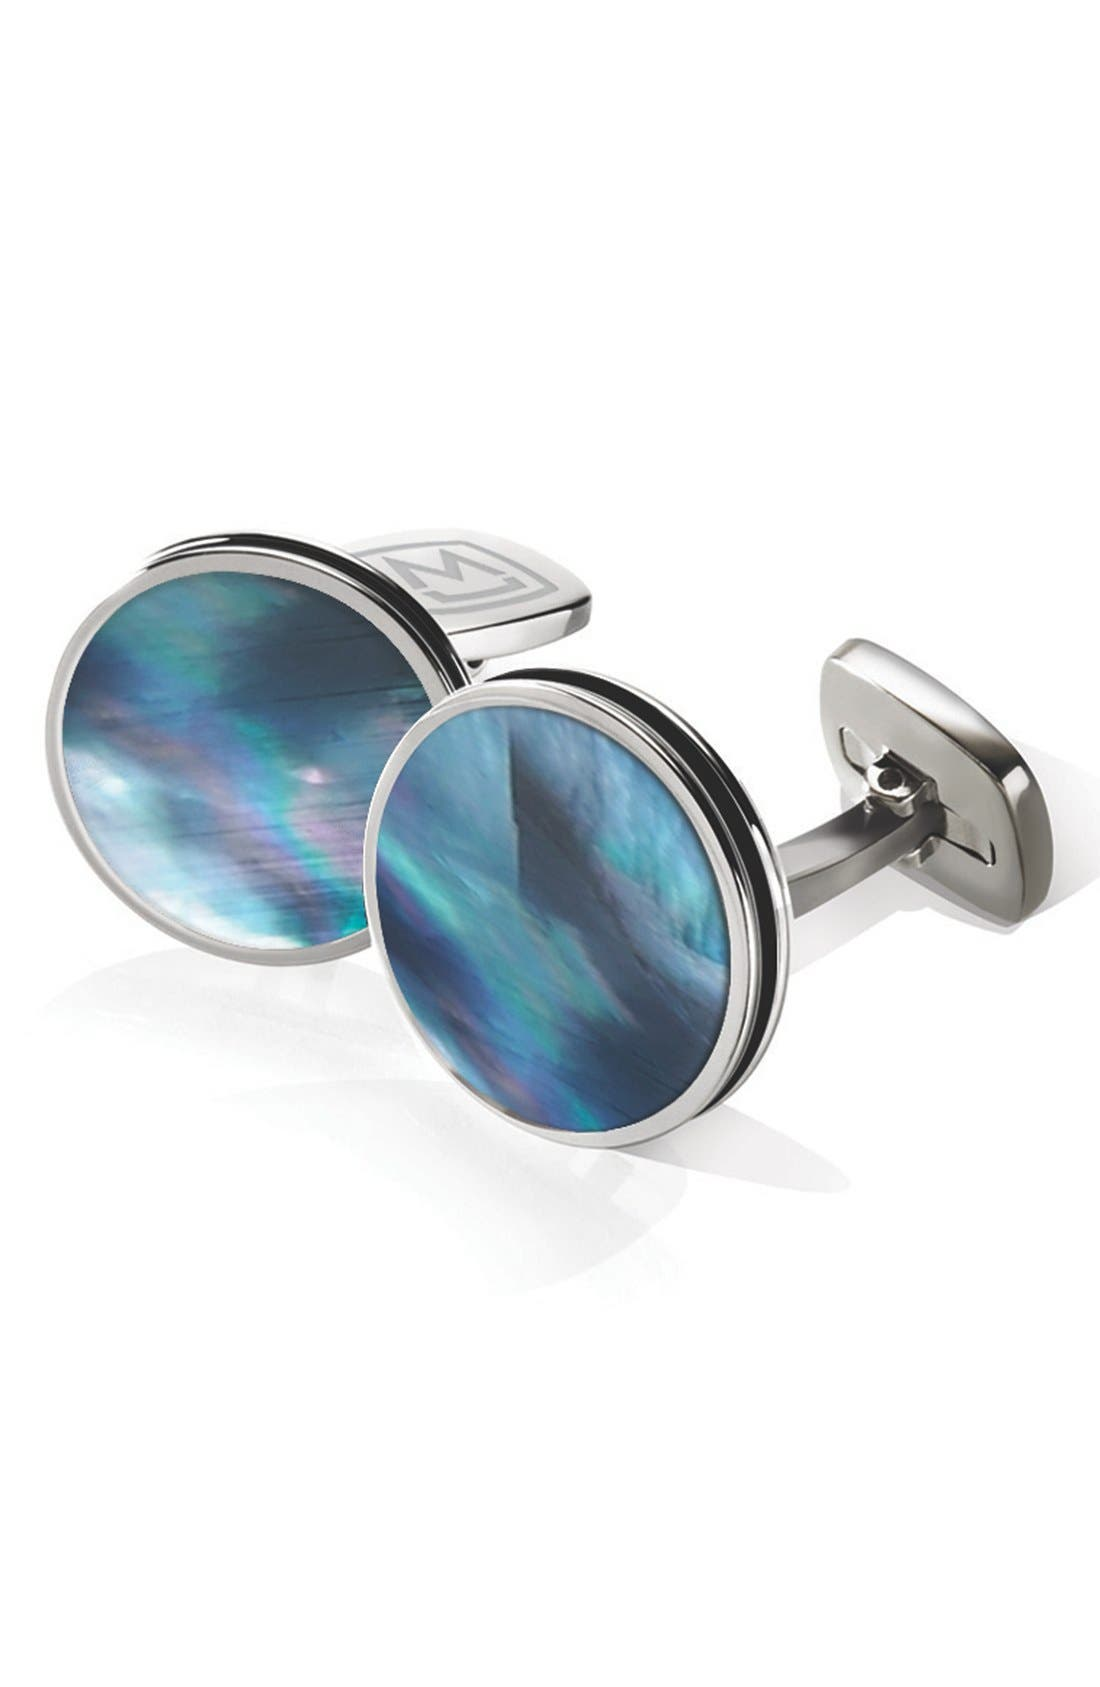 Stainless Steel Cuff Links,                             Main thumbnail 1, color,                             Stainless Steel/ Pearl